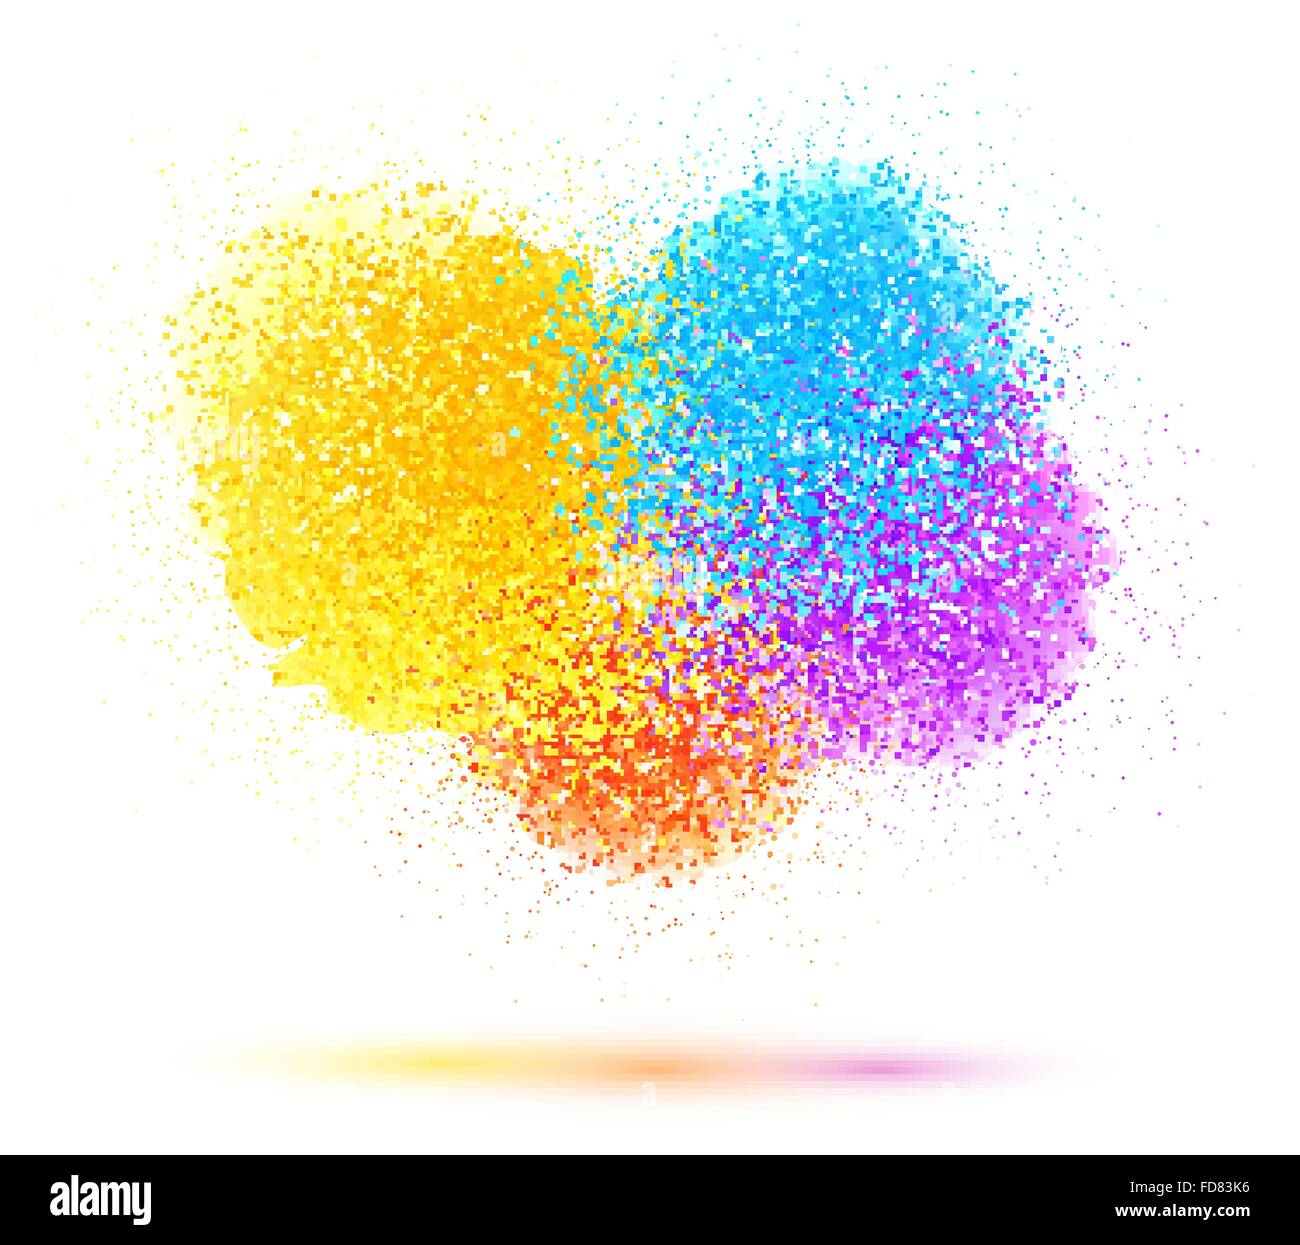 Colorful Paint Splash And Powder Cloud On White Background Stock